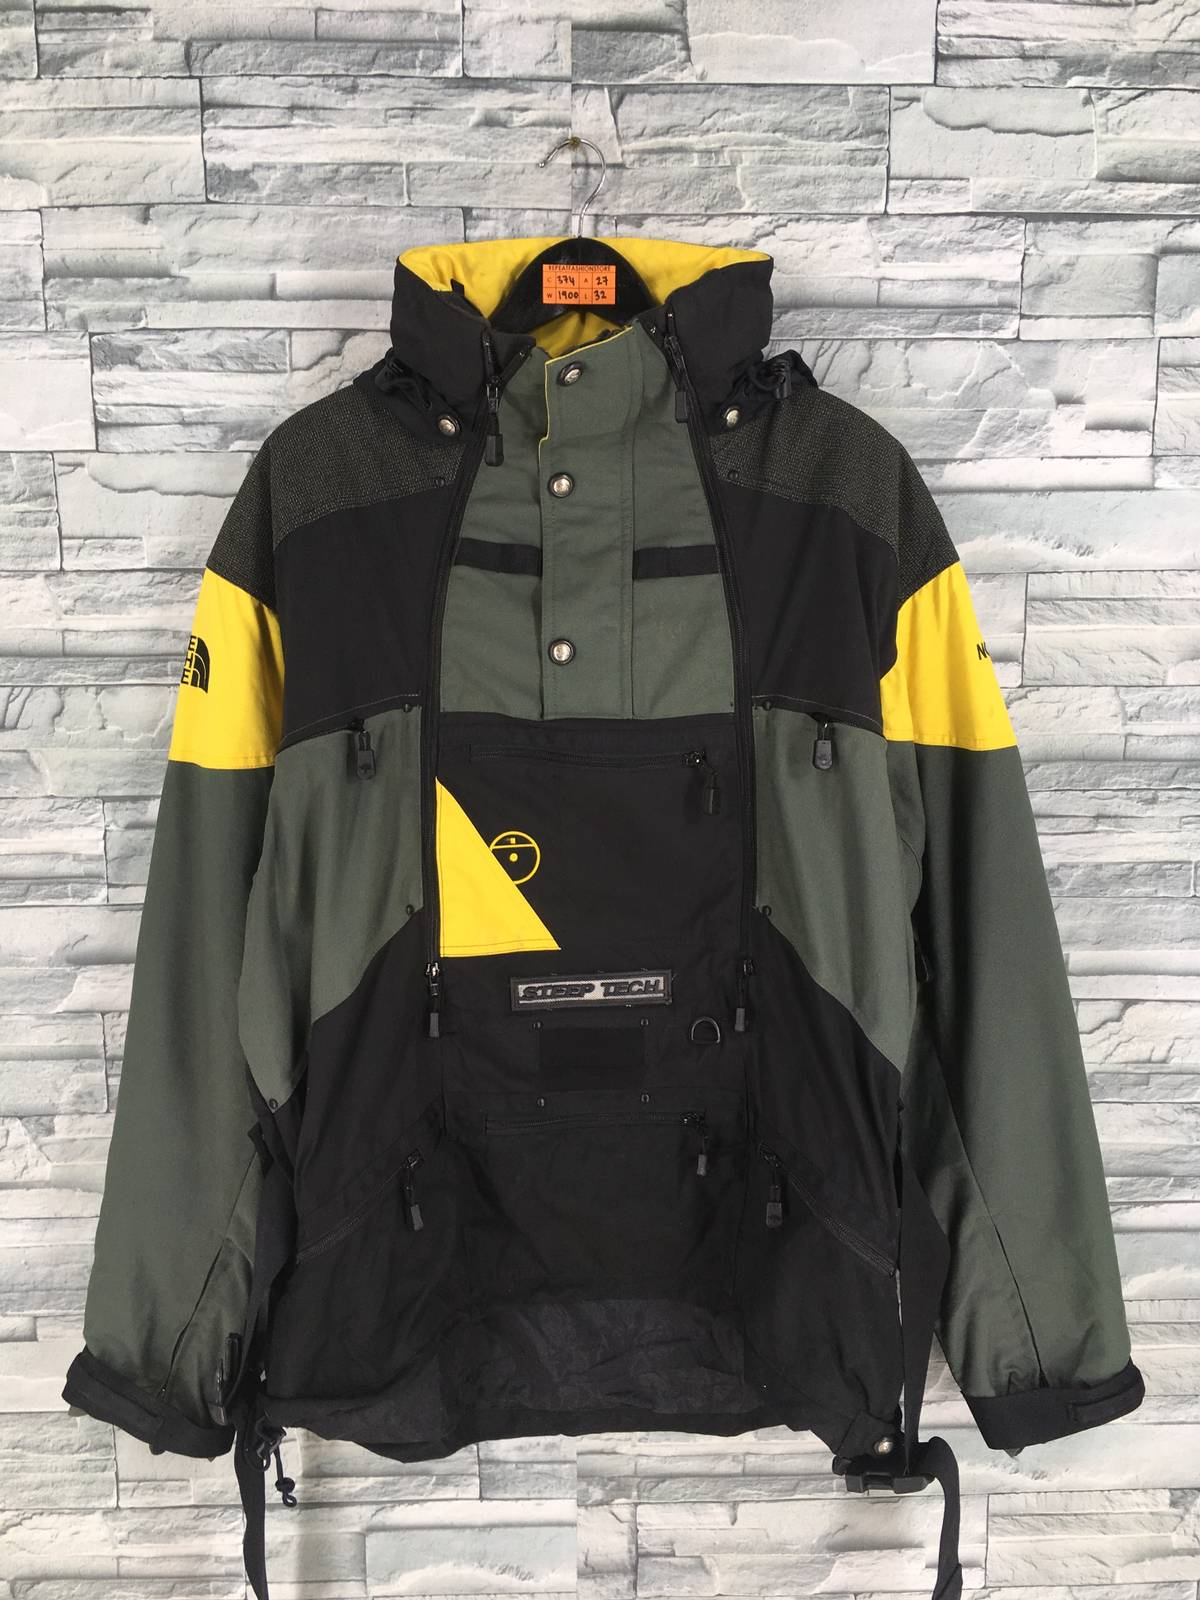 628fab260 The North Face × Vintage Vintage The North Face Jacket Mens X Large North  Face Steep Tech Ski Wear Multicolour Jacket Hoodie 90s Skiing Hooded Jacket  ...